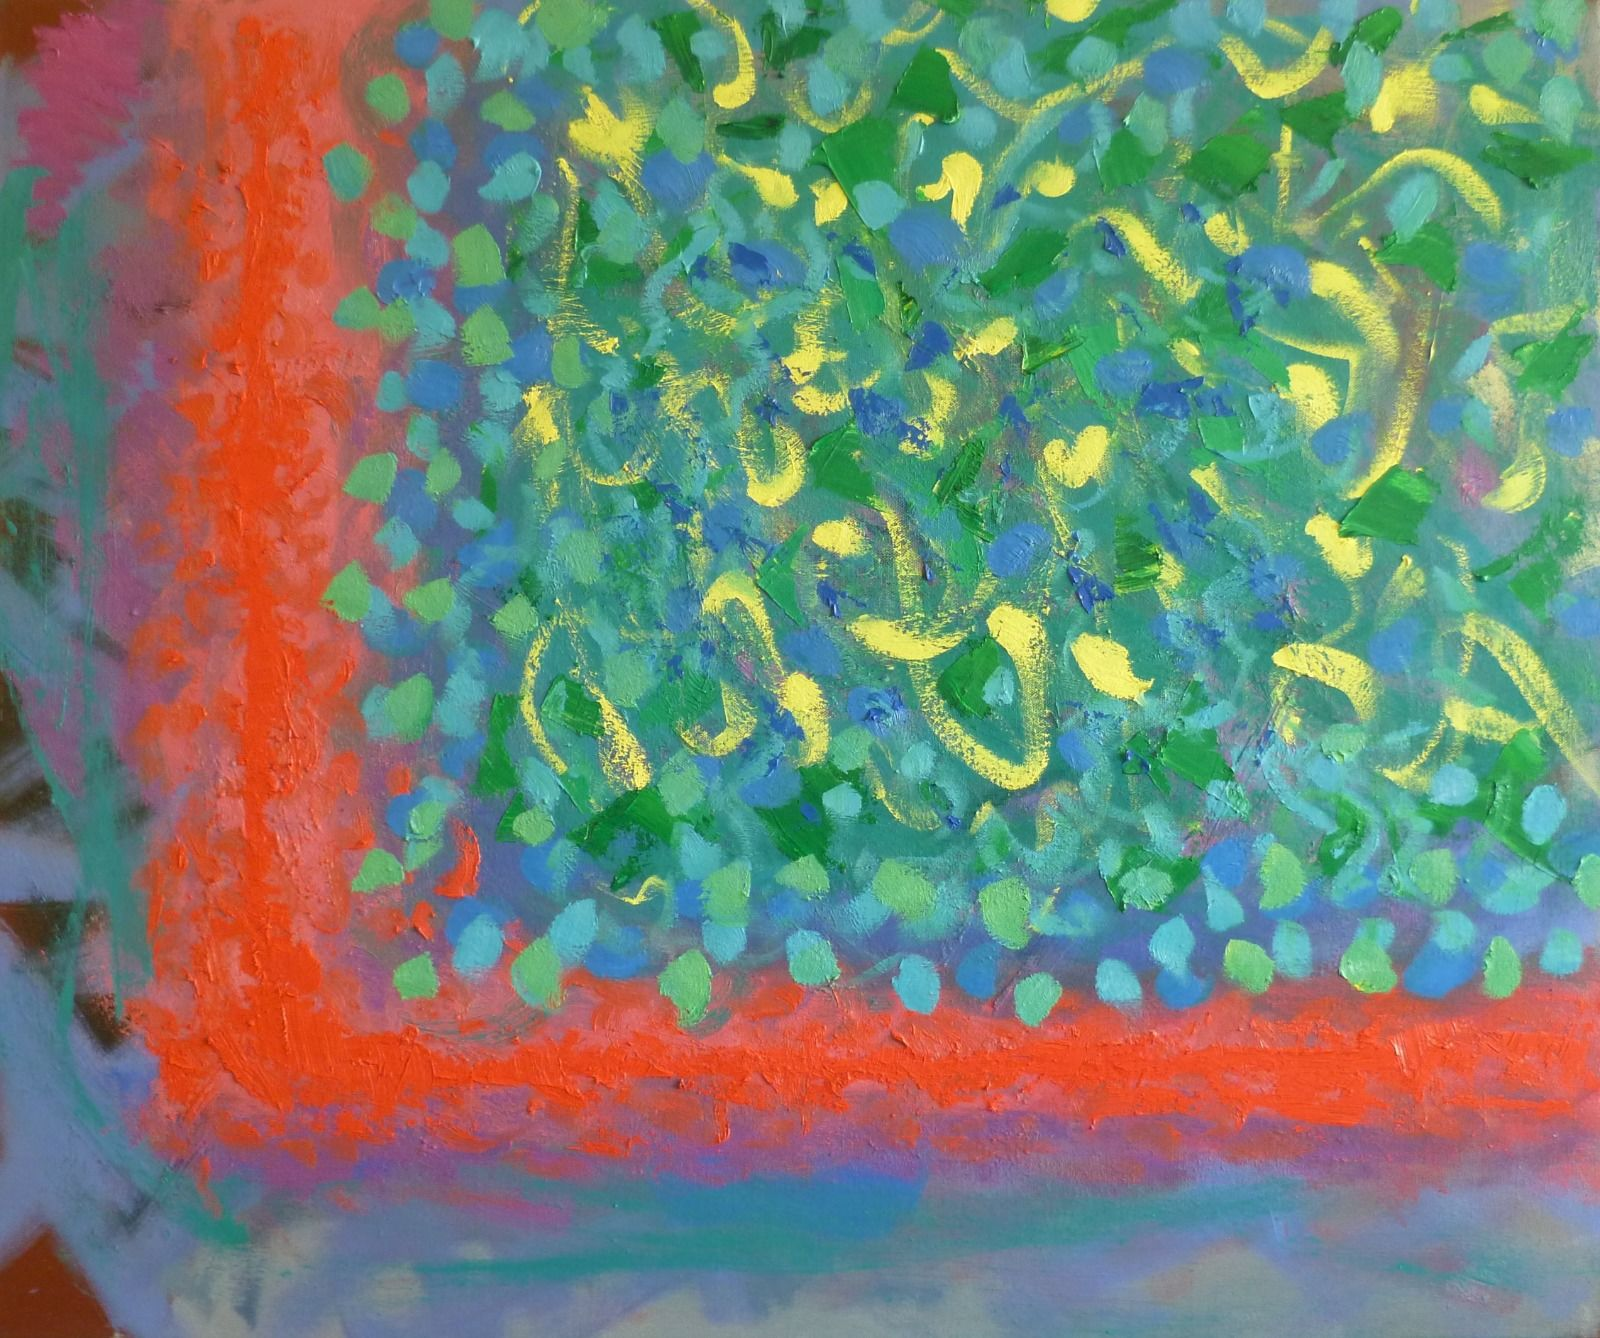 Limited Field 1  75x90x1.8cm  oil on canvas